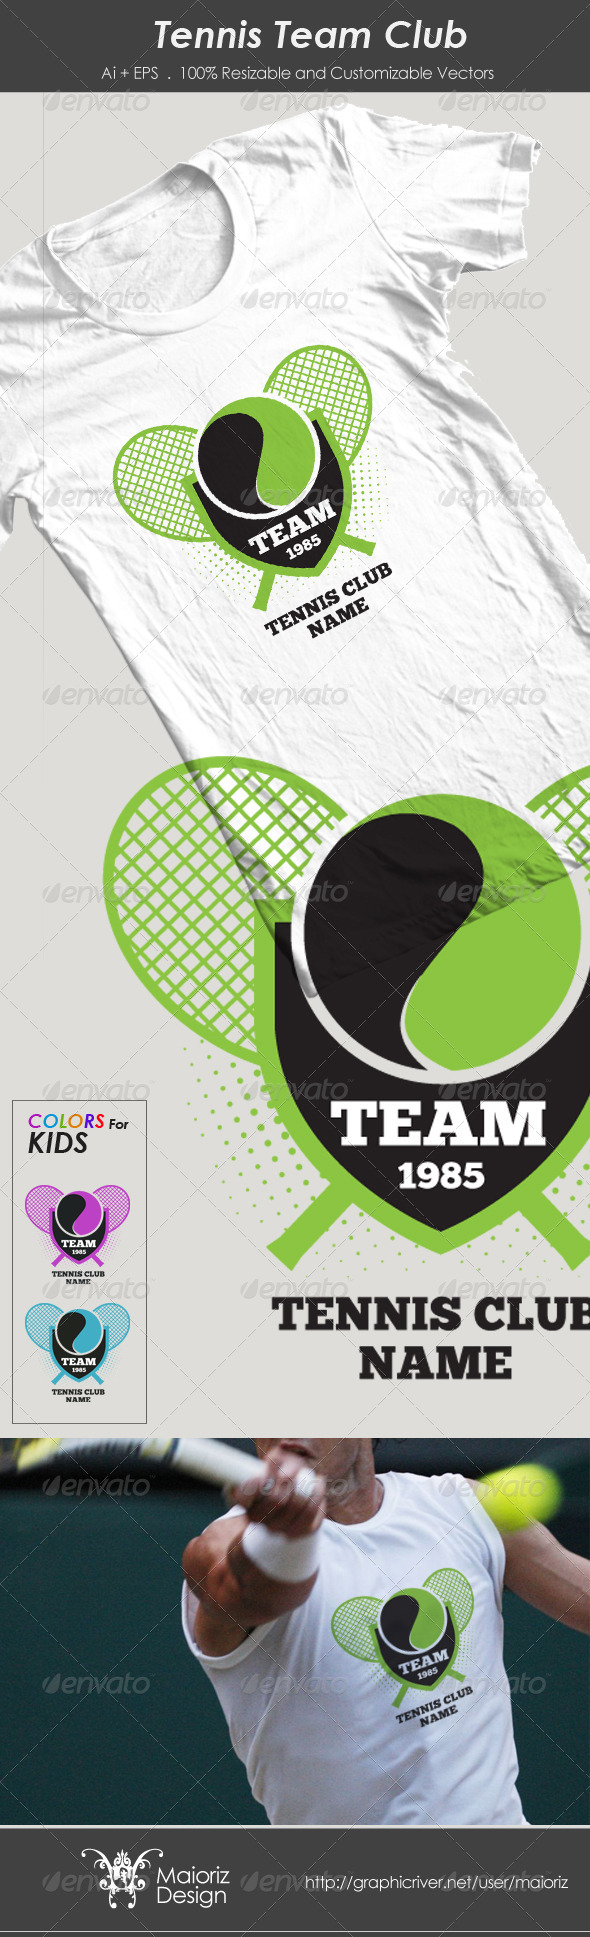 Tennis Team Club Tshirt - Sports & Teams T-Shirts